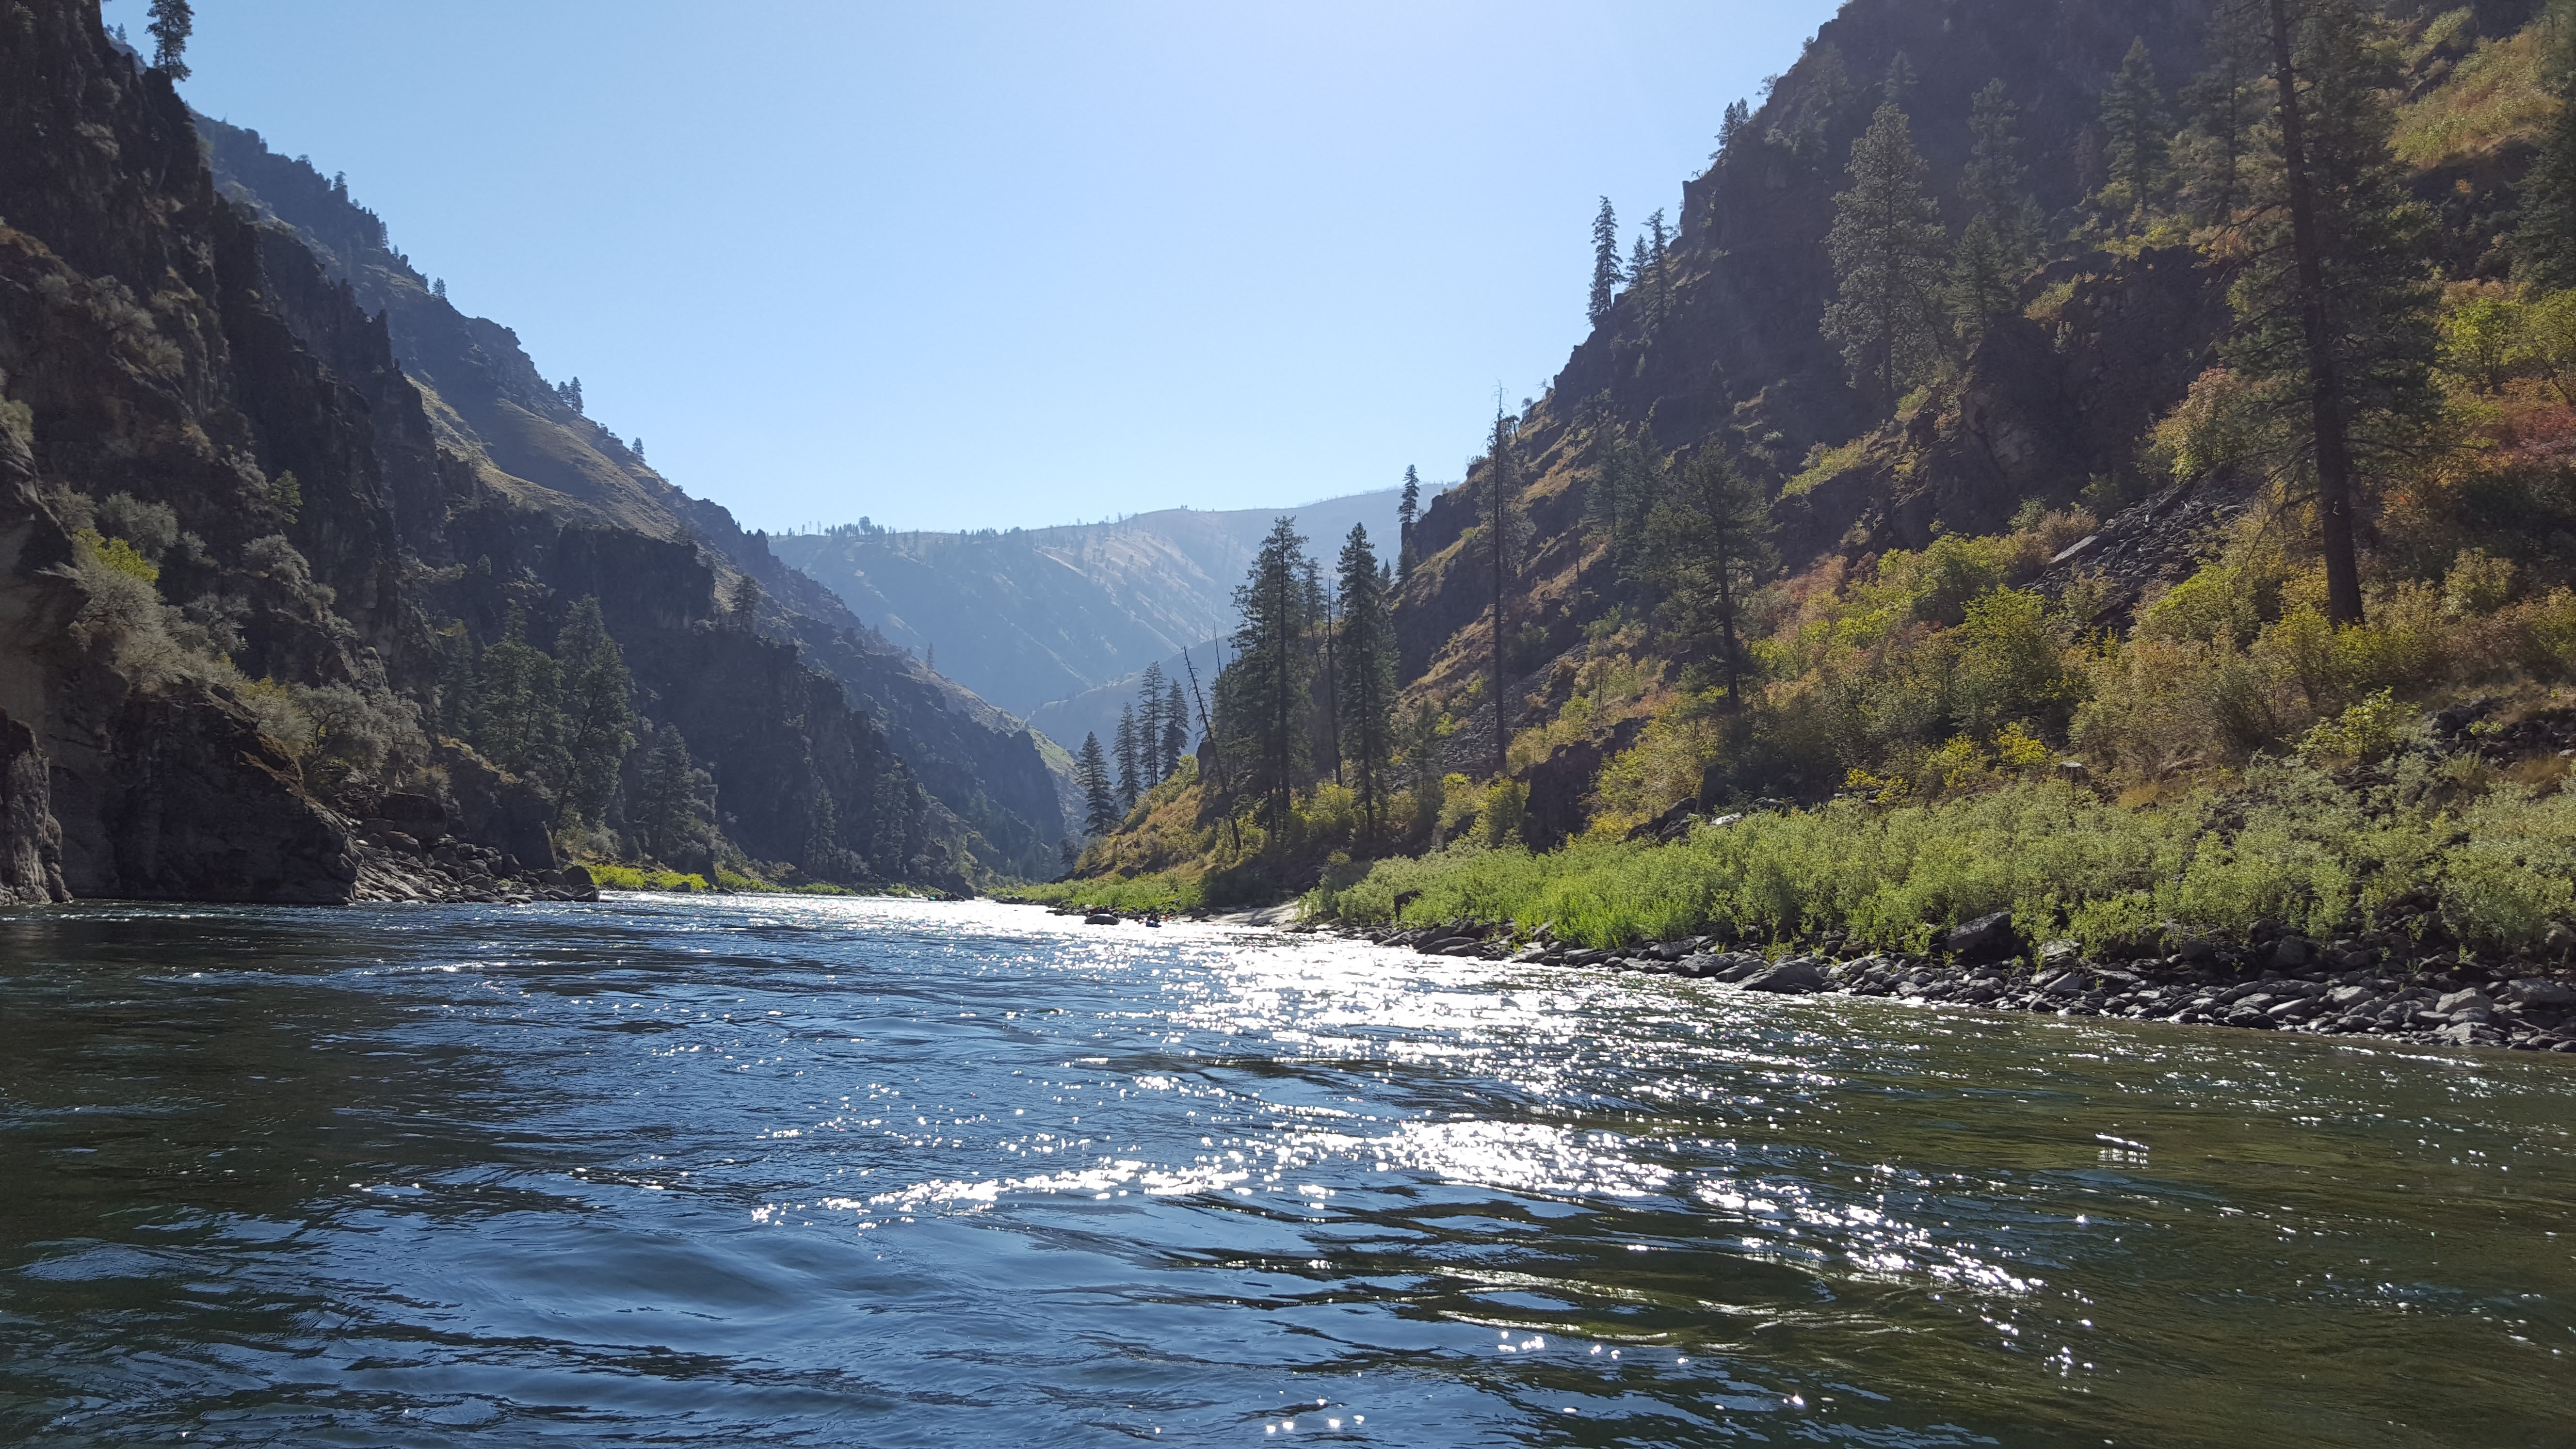 The Main Salmon River.